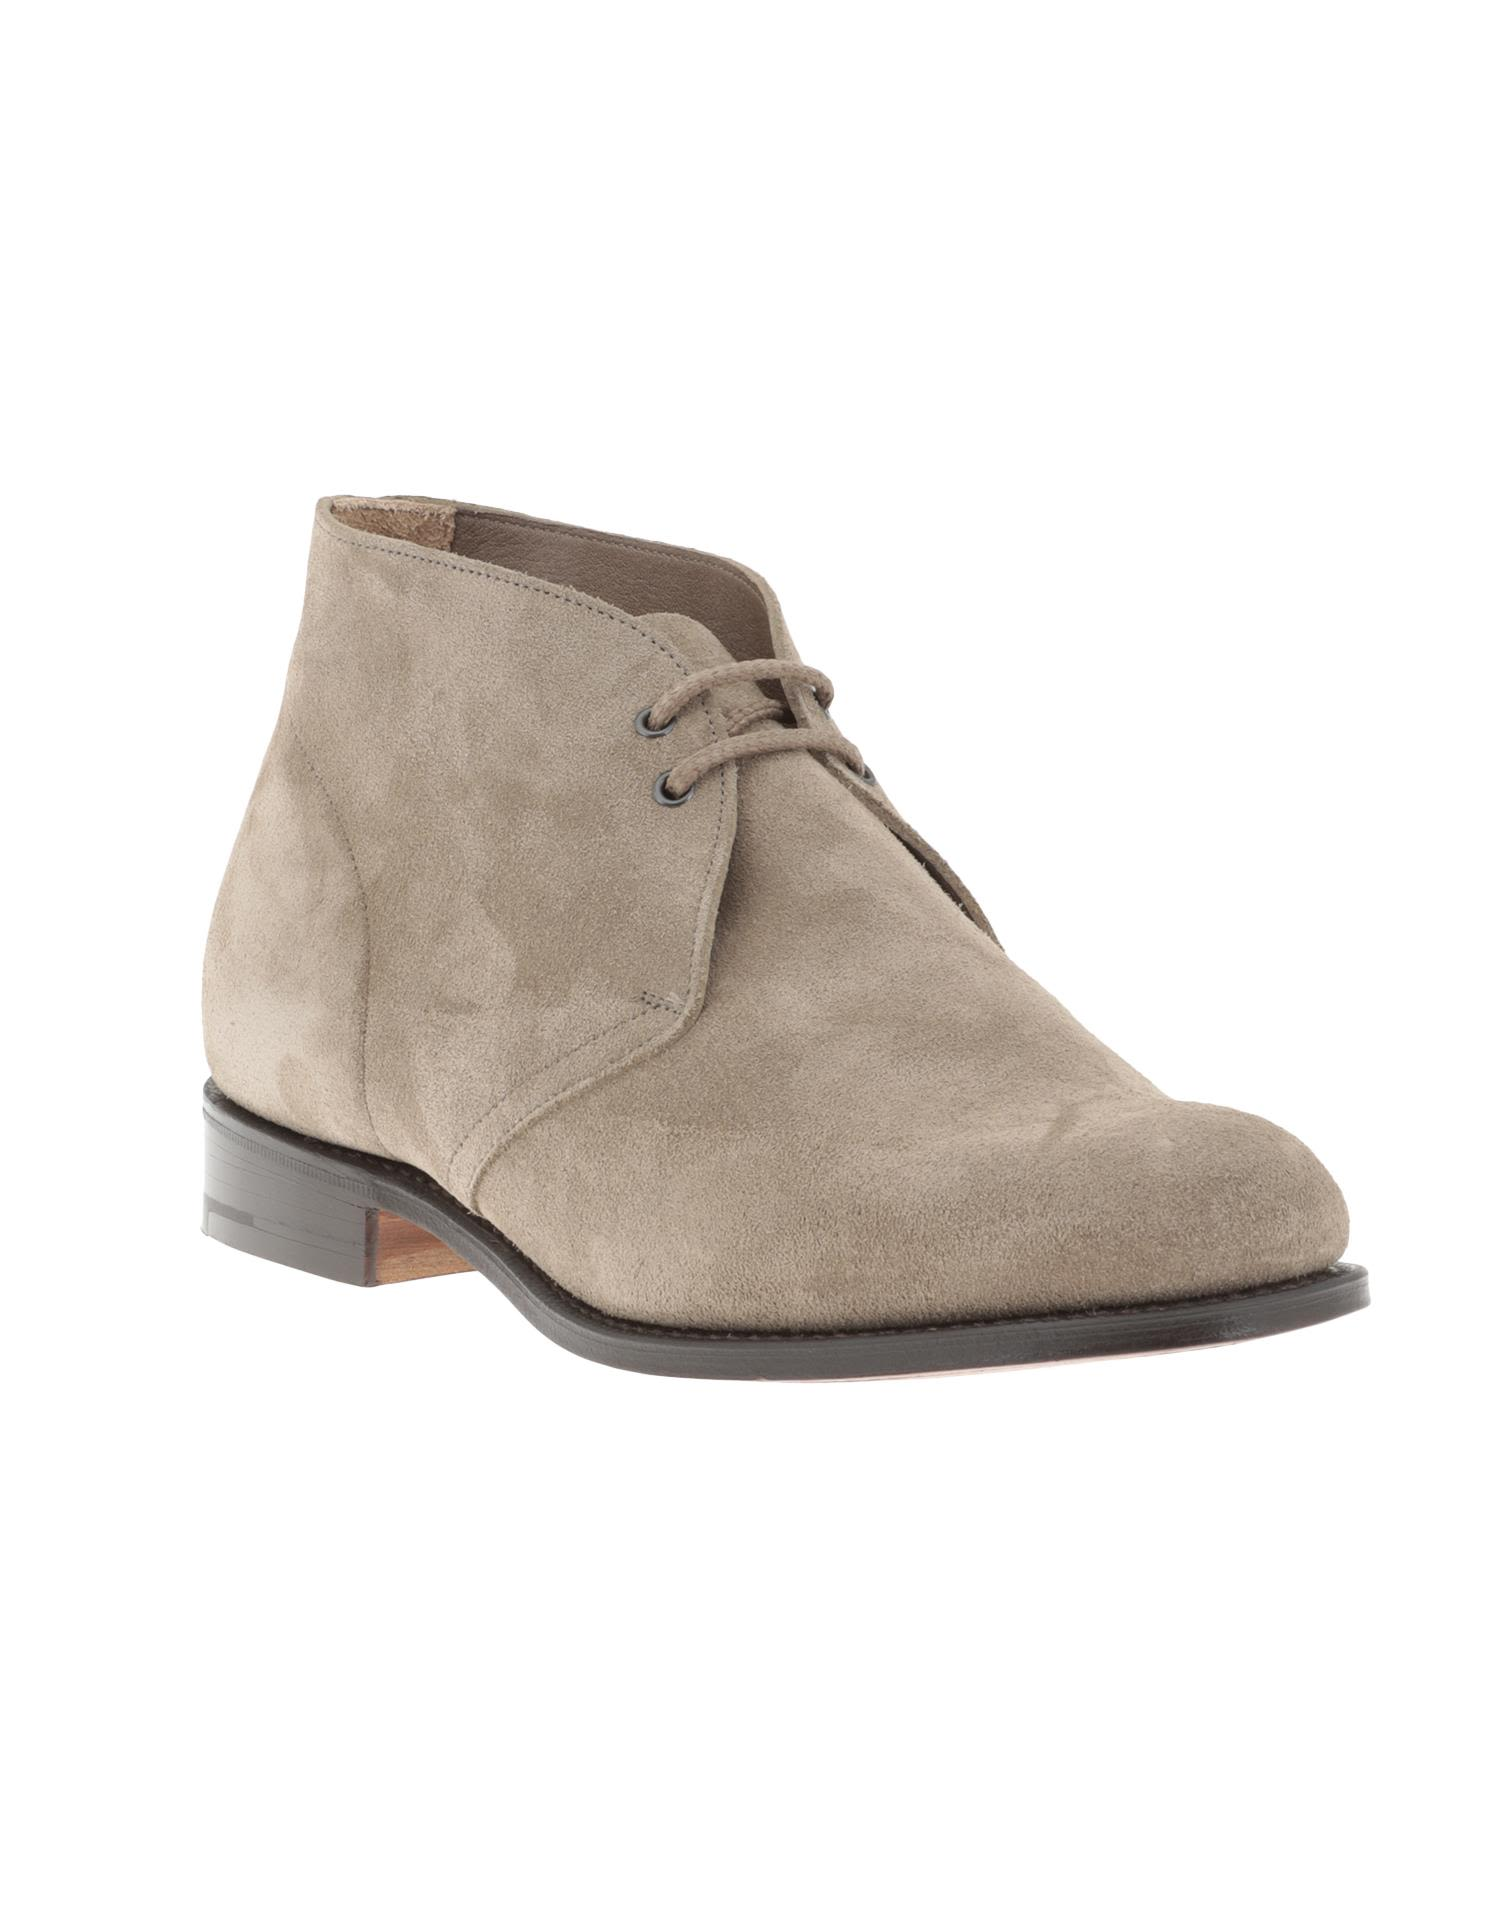 Suede Leather SAHARA L Desert Boots Spring/summer Churchs Free Shipping Choice Cheap 2018 Unisex Cheap Price Store 2ZGVp